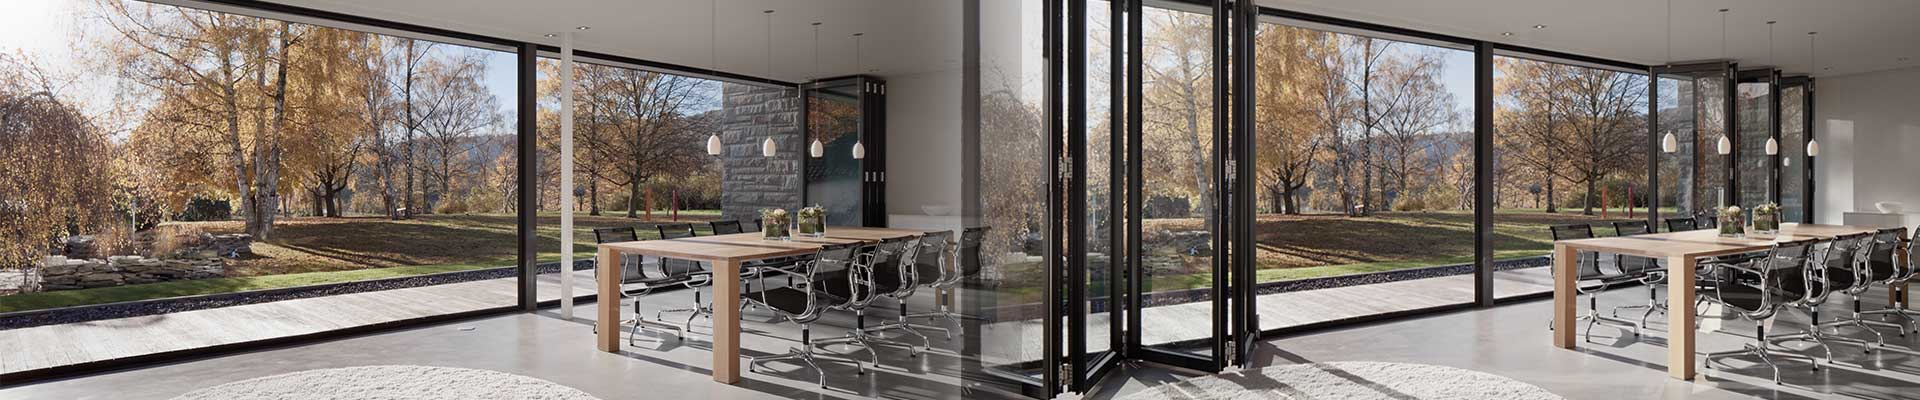 Solarlux Bifold Doors Windows